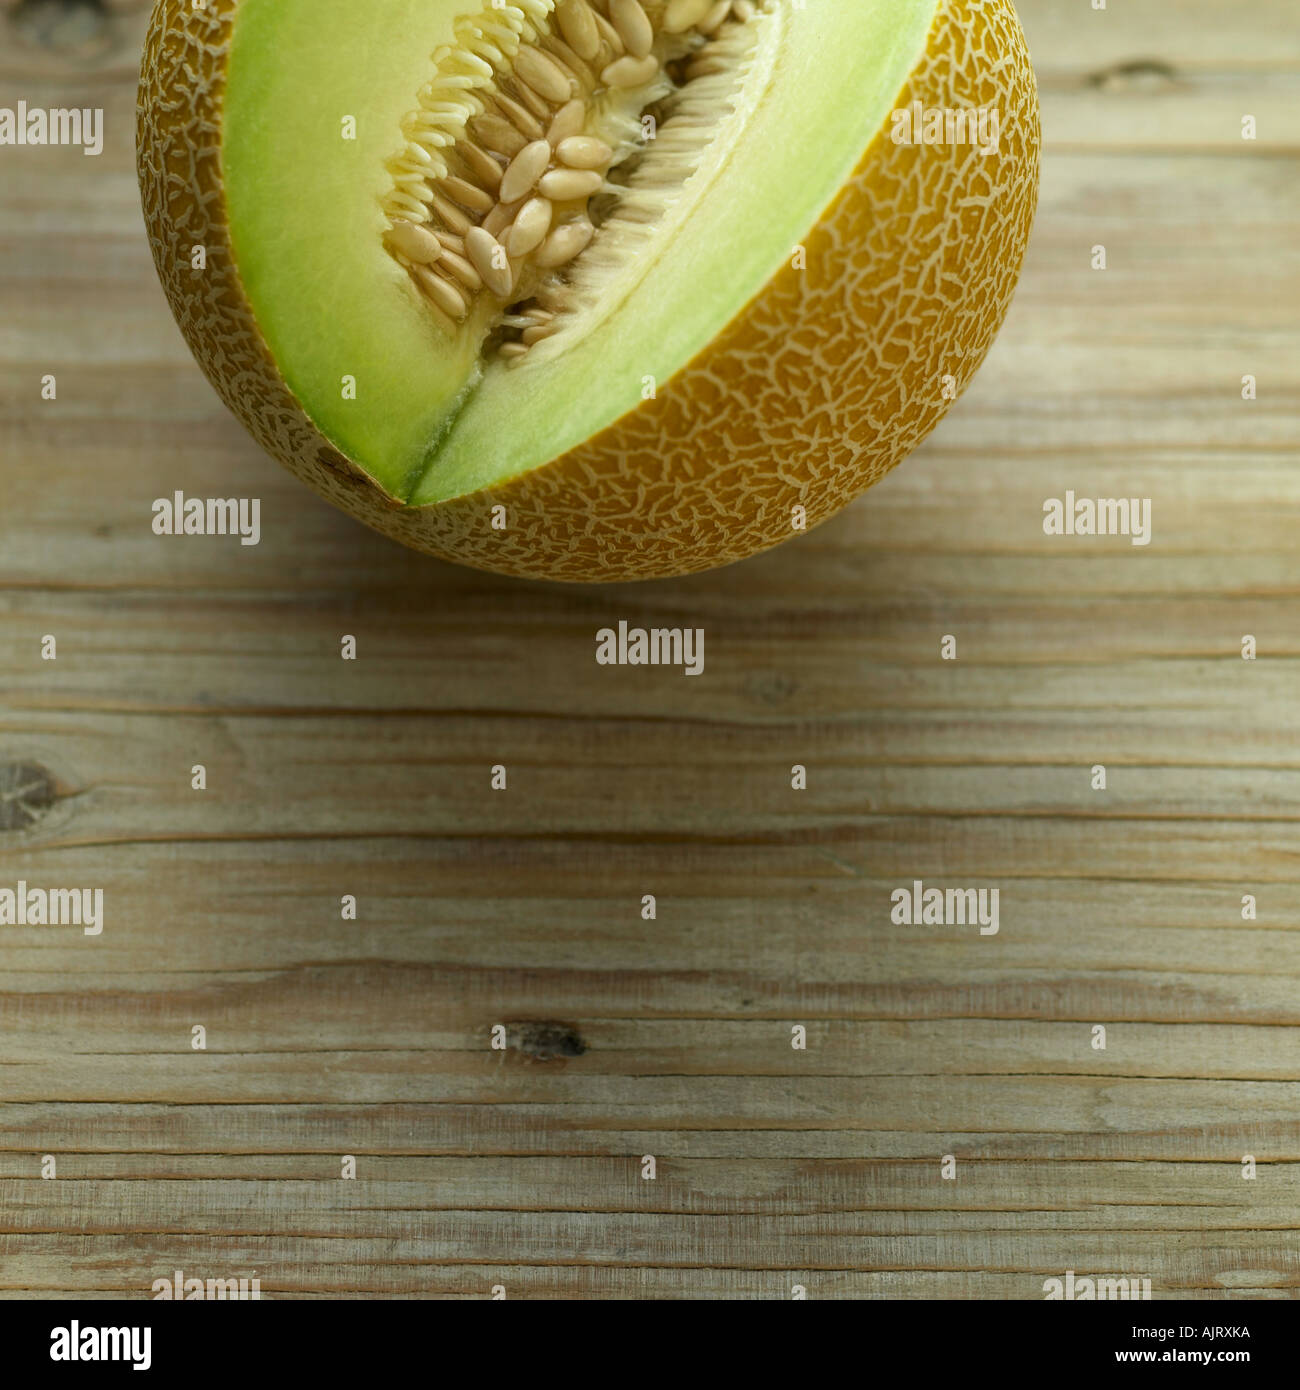 Galia melon on pale wooden background - Stock Image